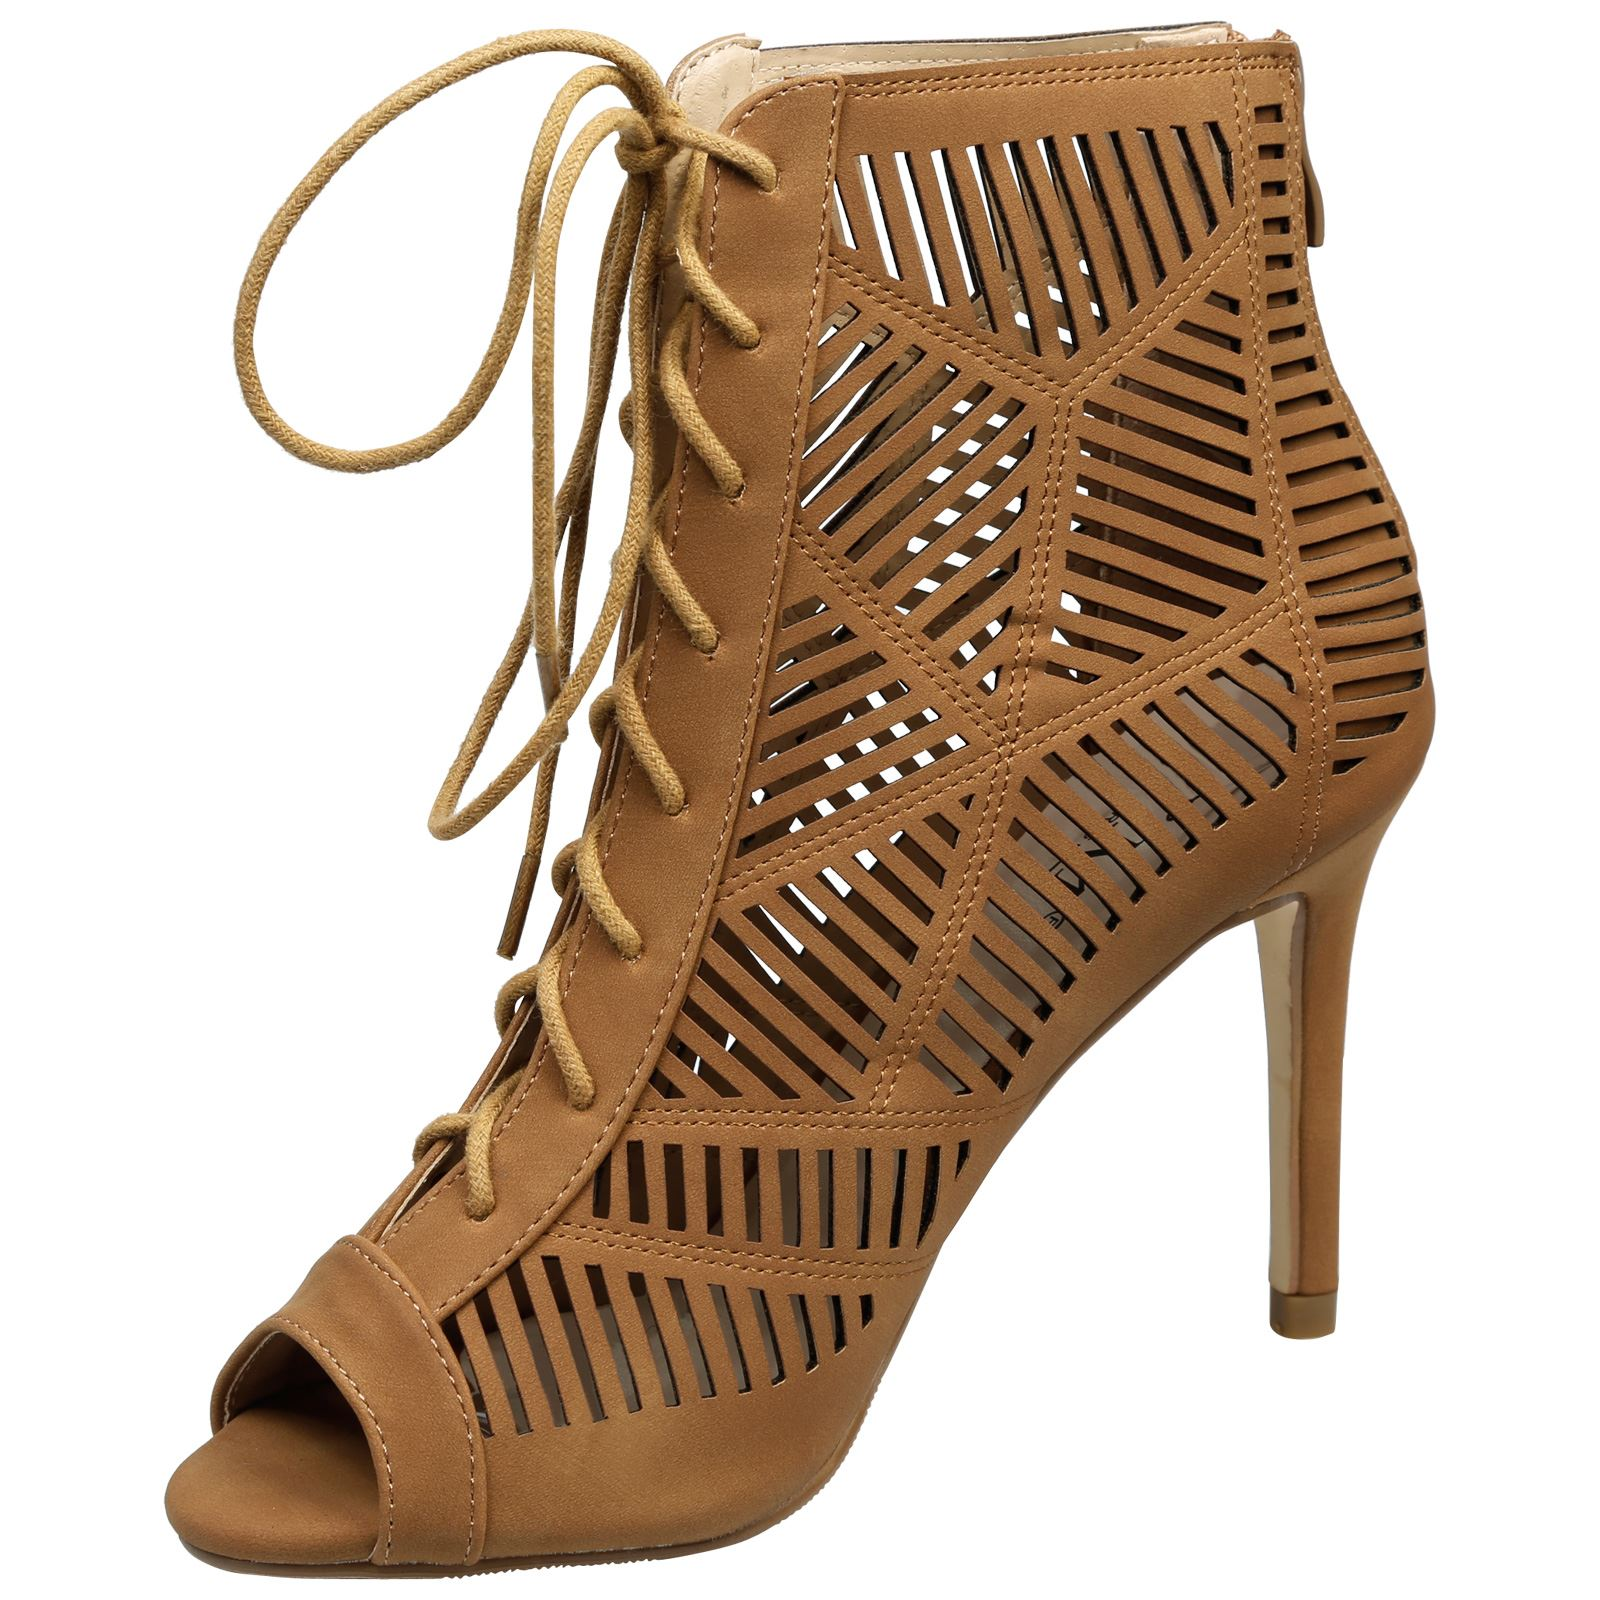 Anais-Womens-High-Heels-Stilettos-Lace-Up-Peep-Toe-Ankle-Boots-Ladies-Shoes-Size thumbnail 8